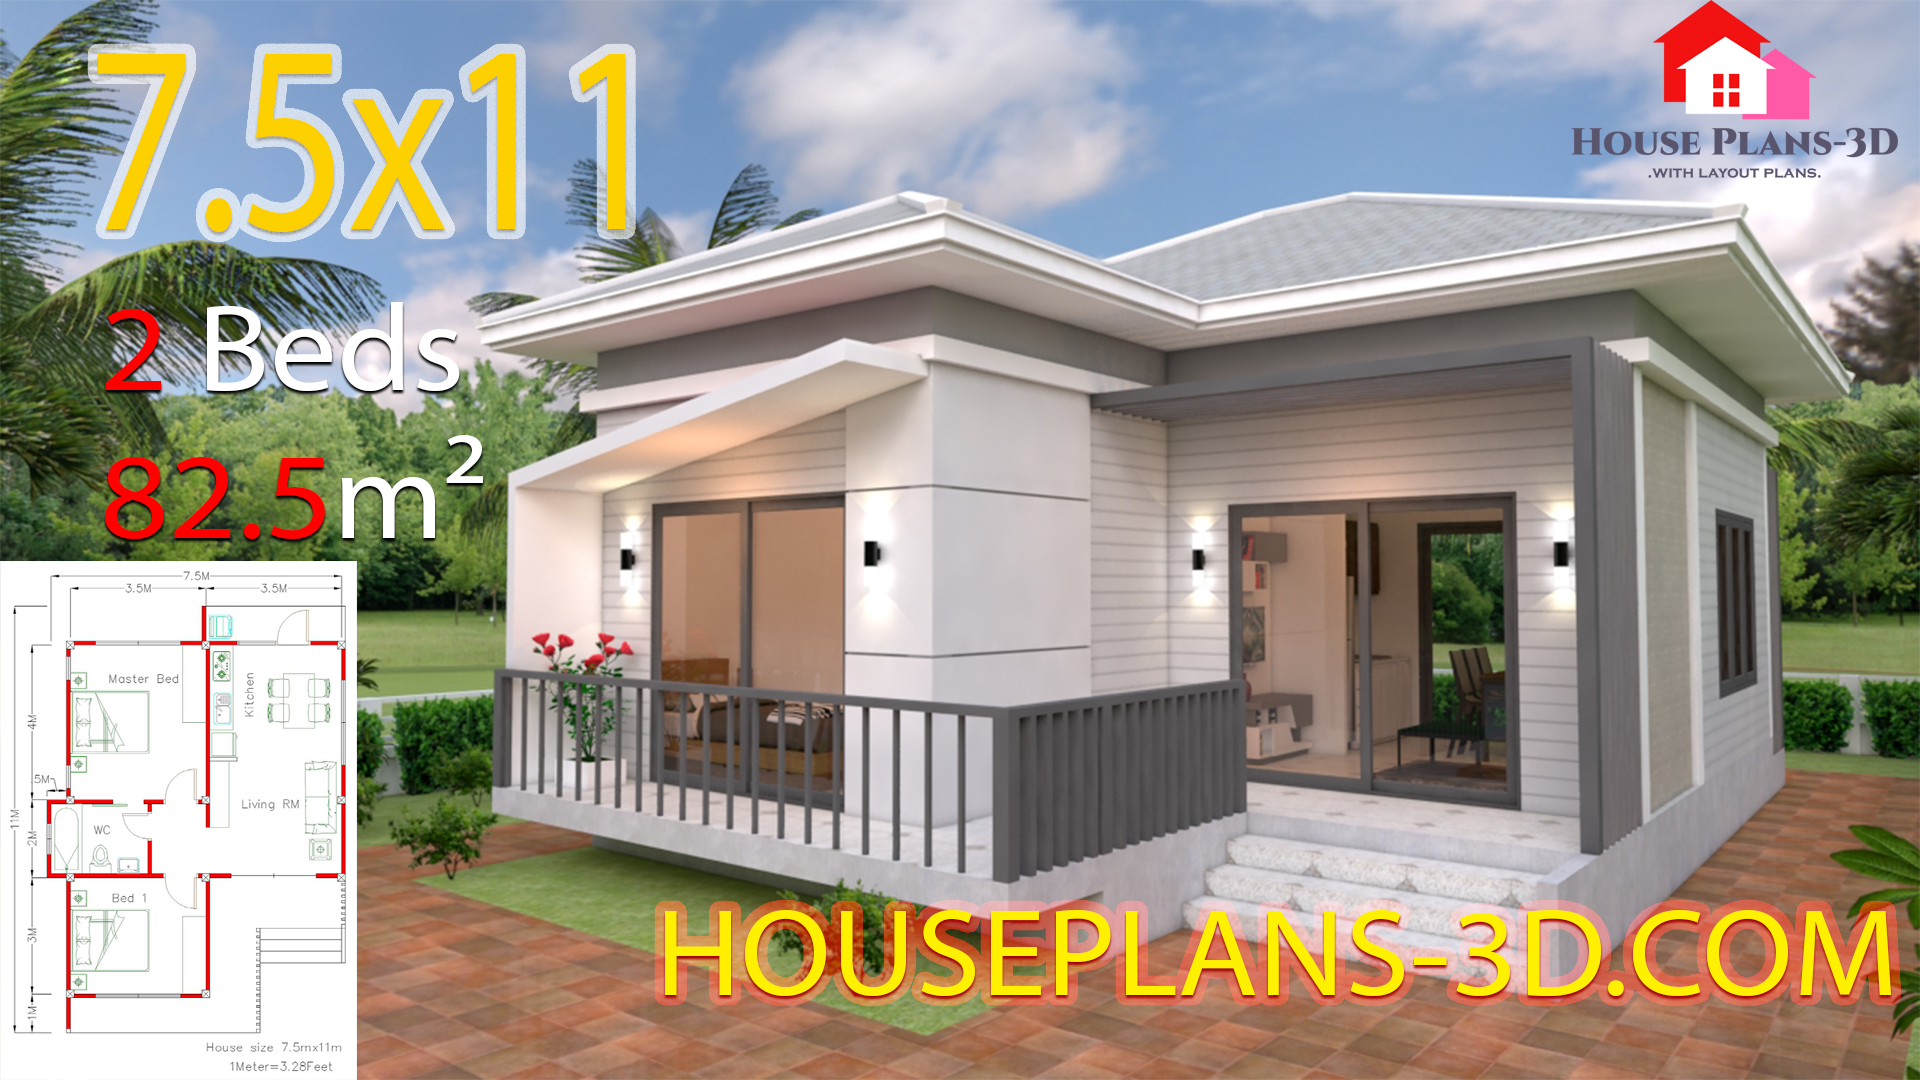 House Plans 7 5x11 With 2 Bedrooms Hip Roof House Plans 3d